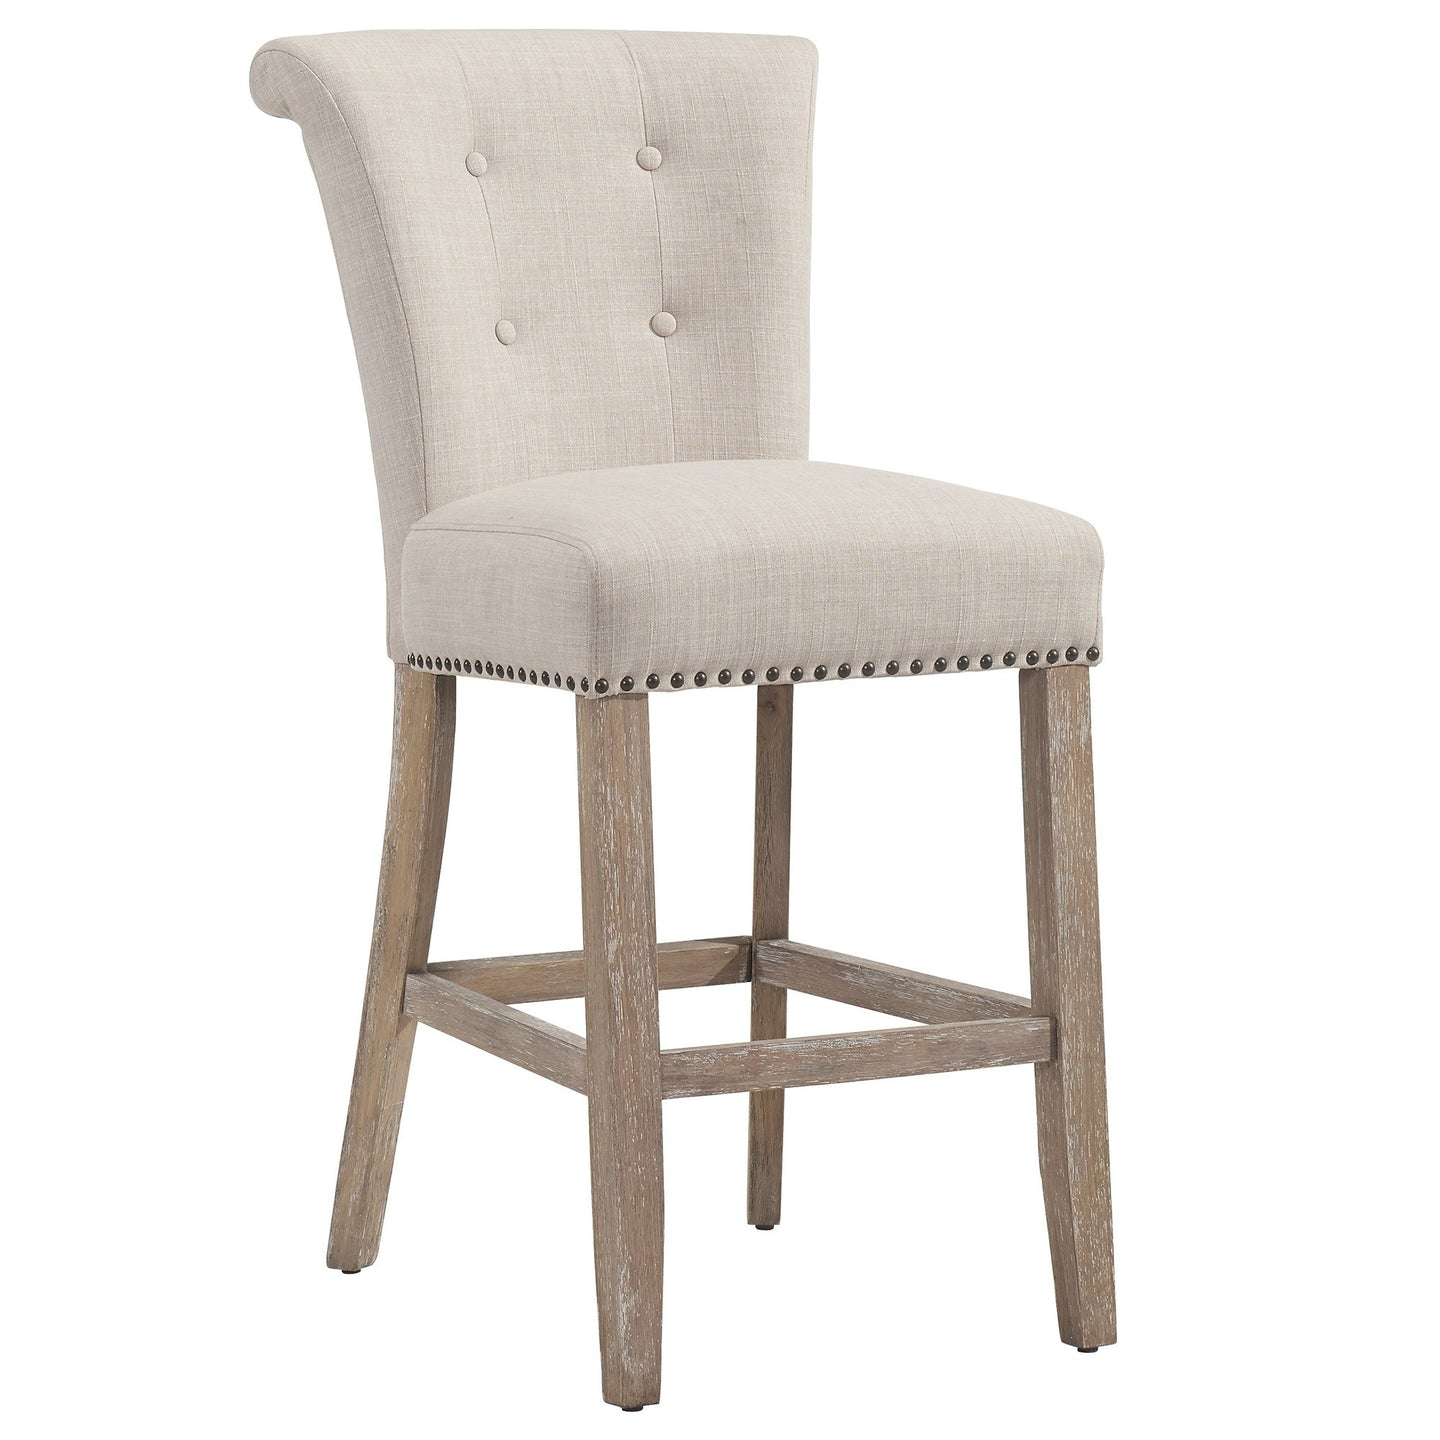 SELMA-26 COUNTER STOOL-BEIGE/OAK LEG Price shown for each -